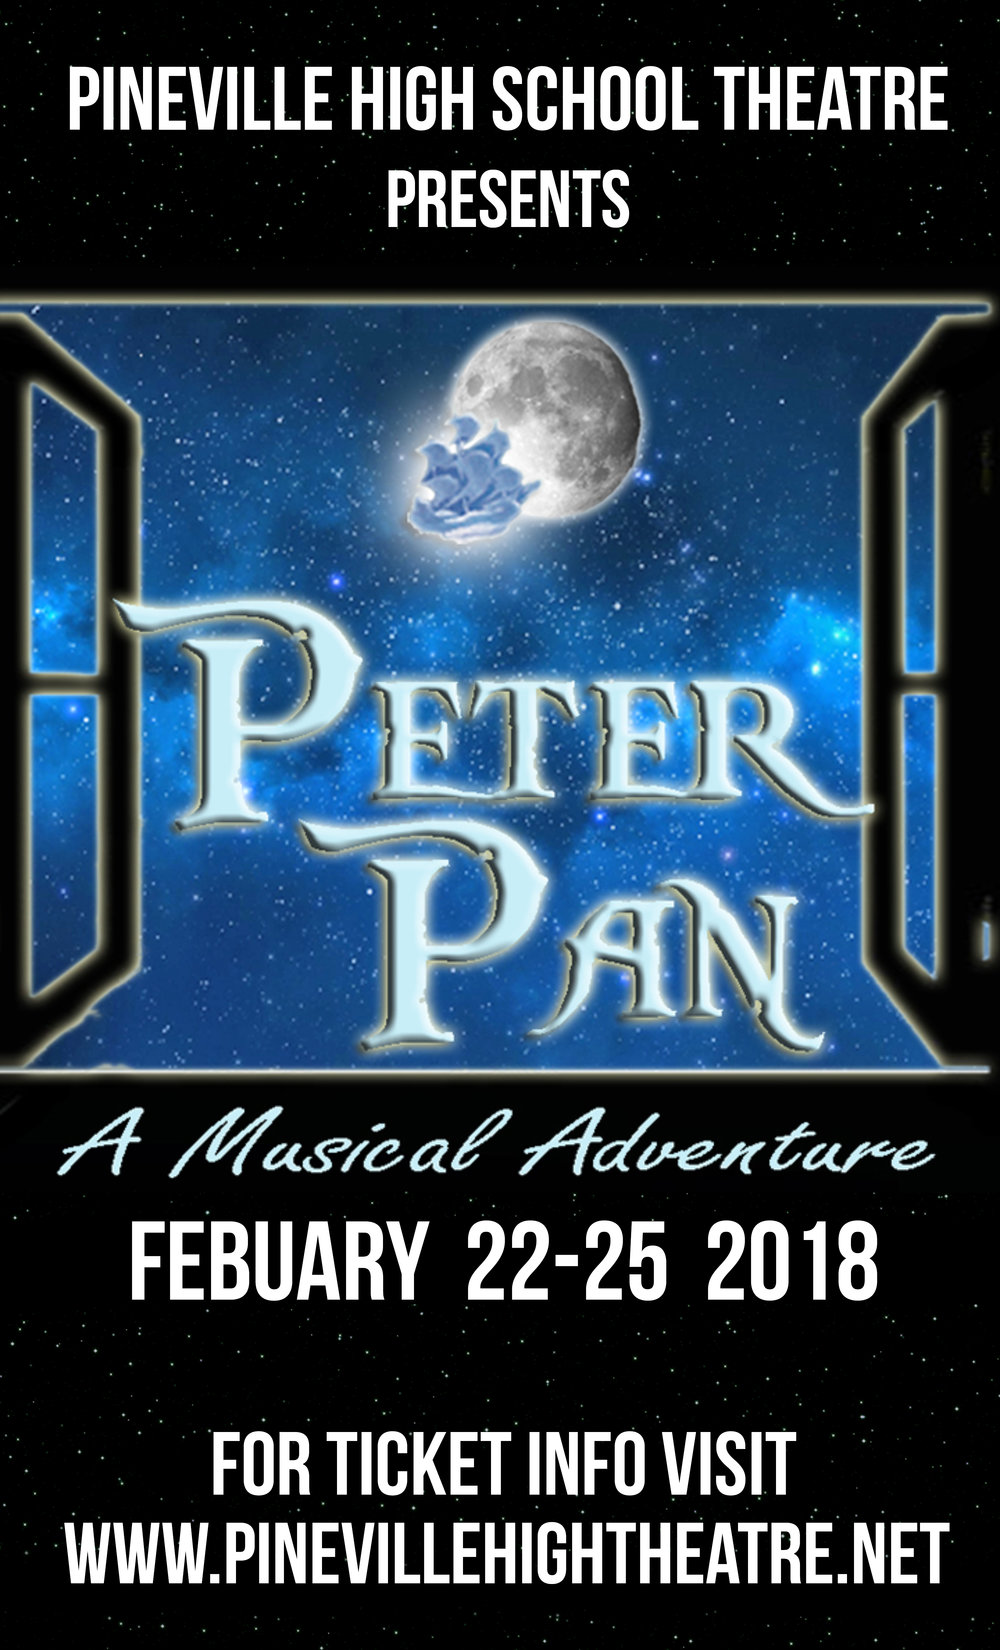 PHS Peter Pan 17-18 Posters Rev 2.jpg